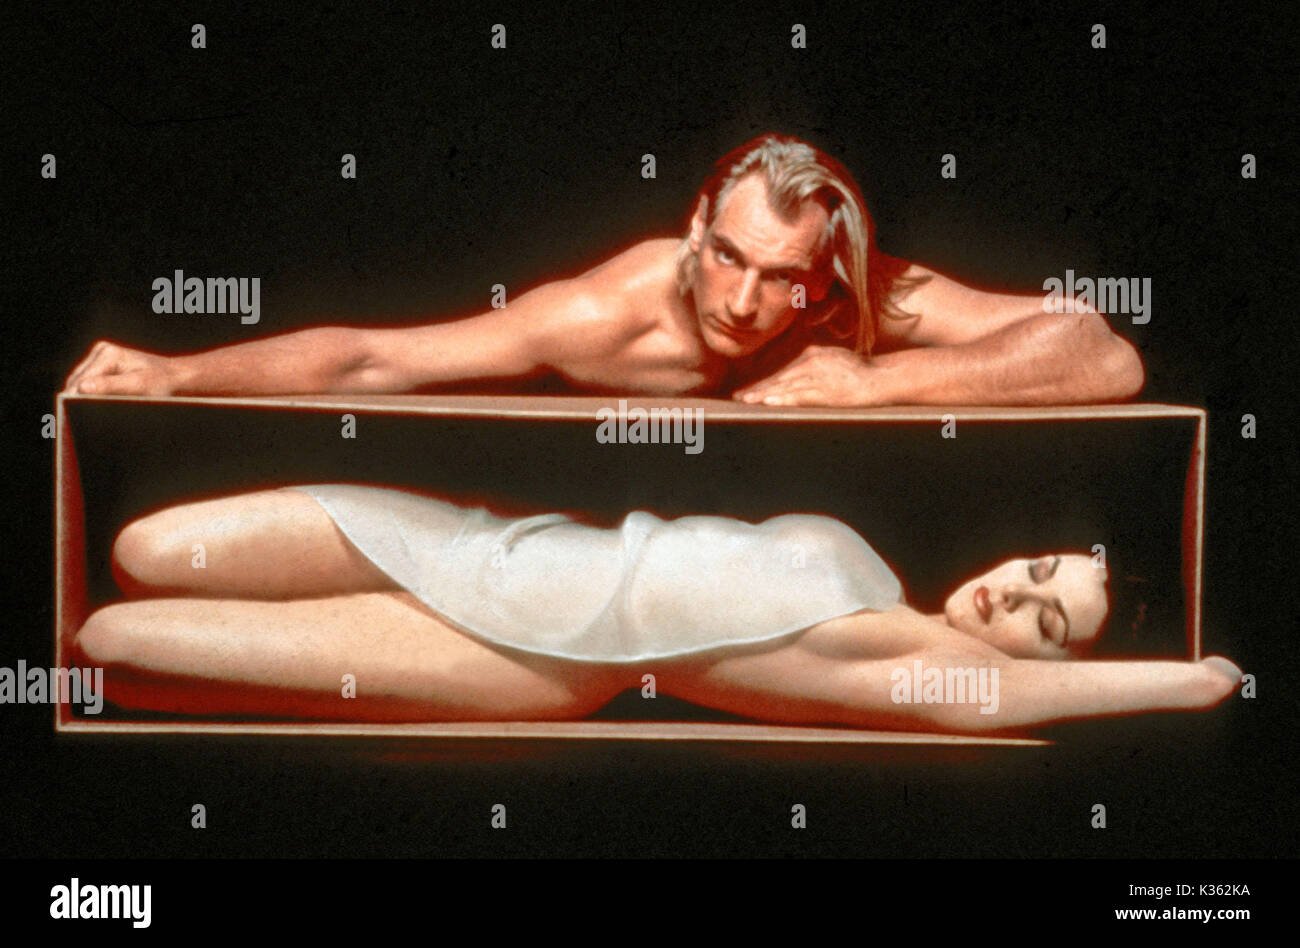 boxing helena images - HD1300×948